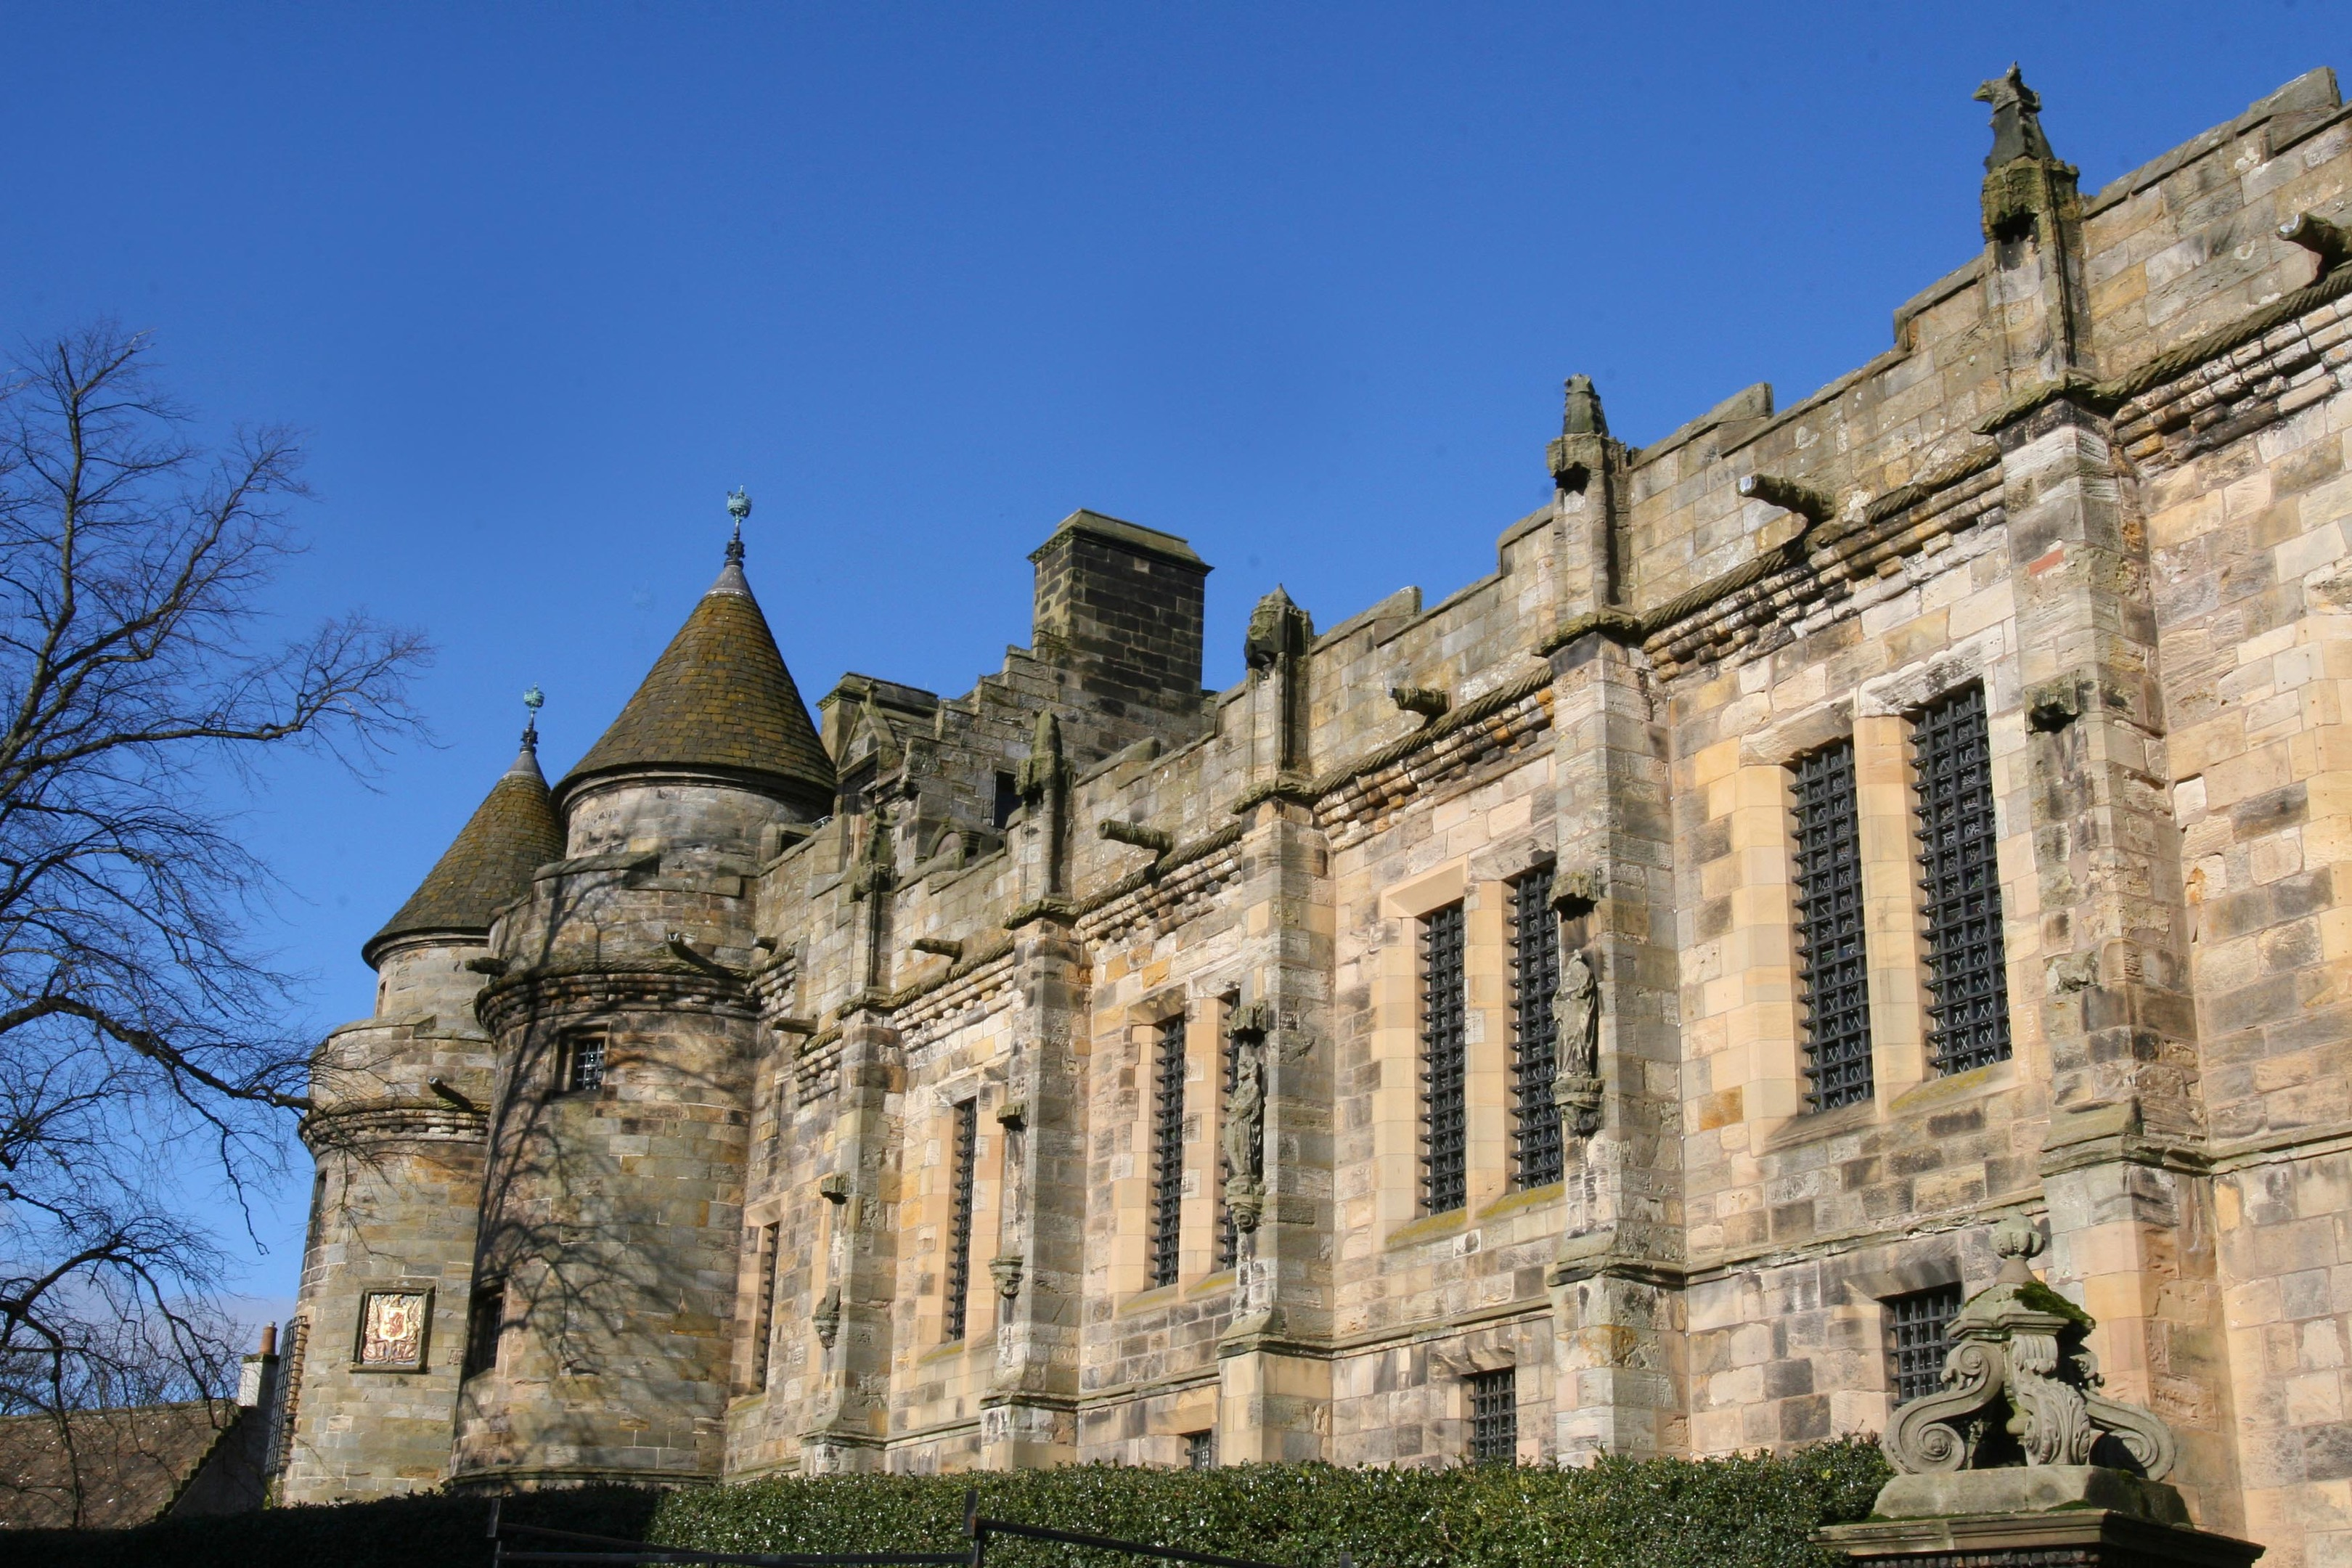 Falkland Palace was used as a royal deer hunting lodge.